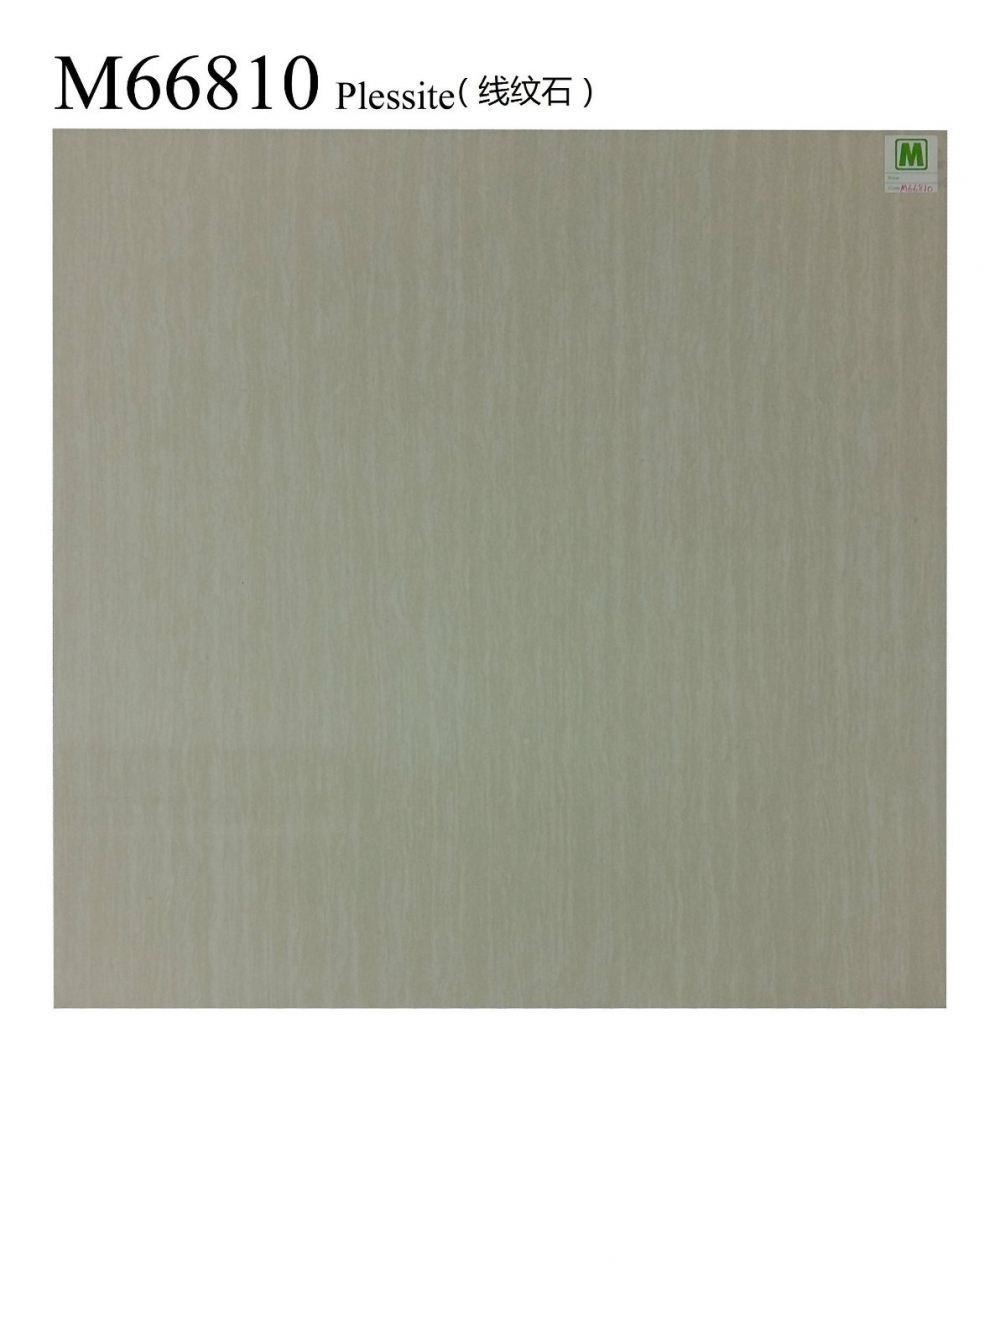 M66810 FLOOR TILES TILE Supplier, Suppliers, Supply, Supplies ~ Itoli Ceramic Sdn Bhd